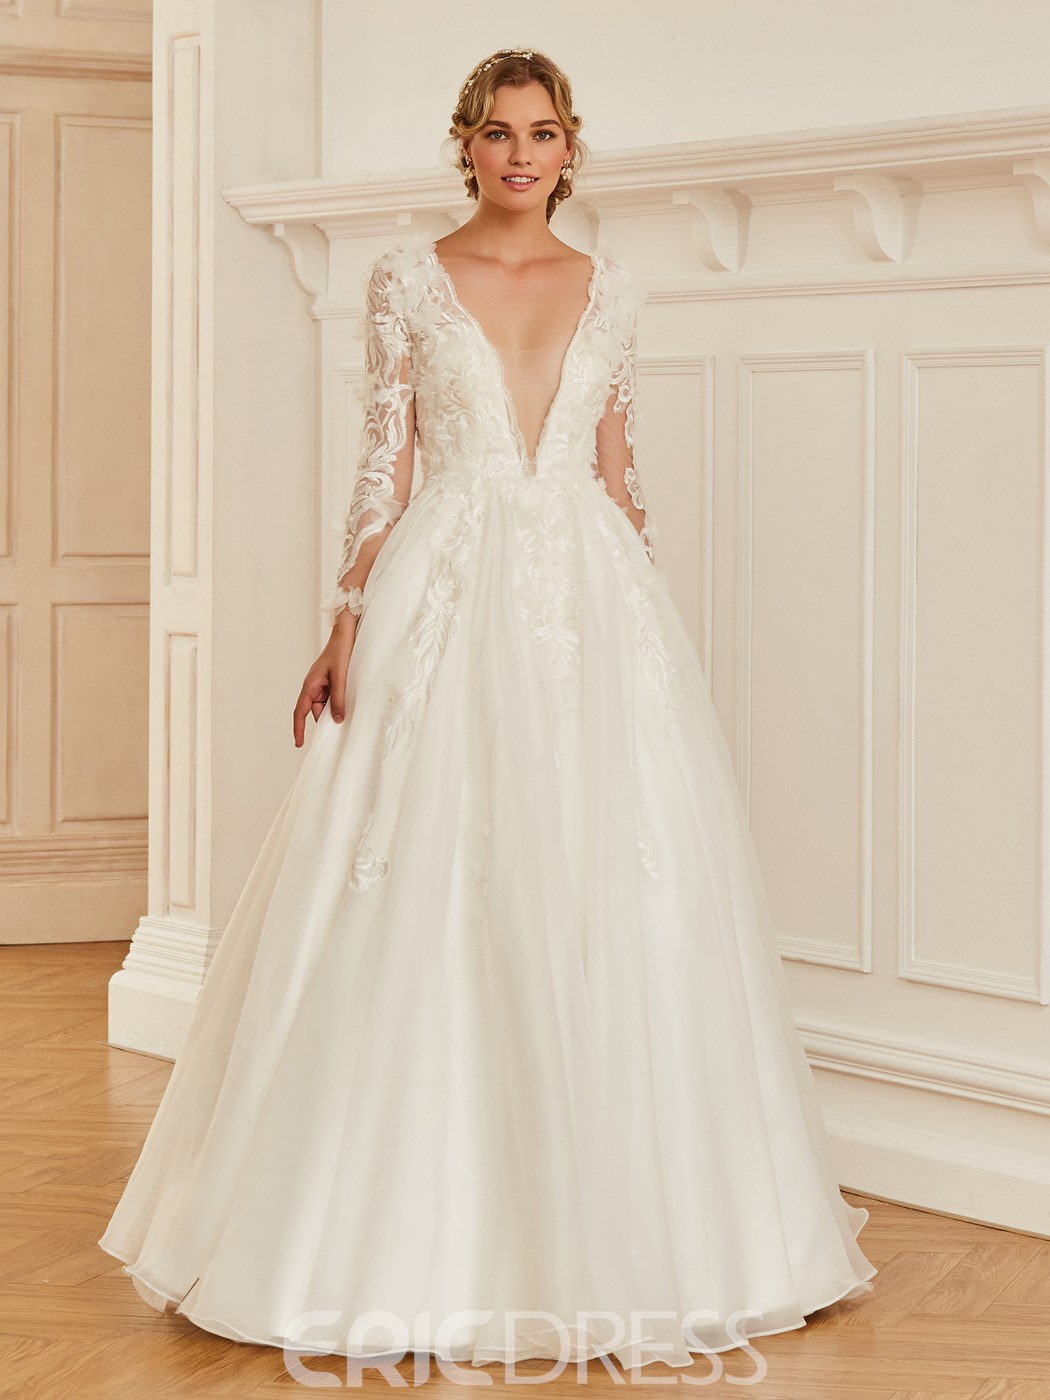 Ericdress V Neck Long Sleeves Ball Gown Wedding Dress 12960189 ...